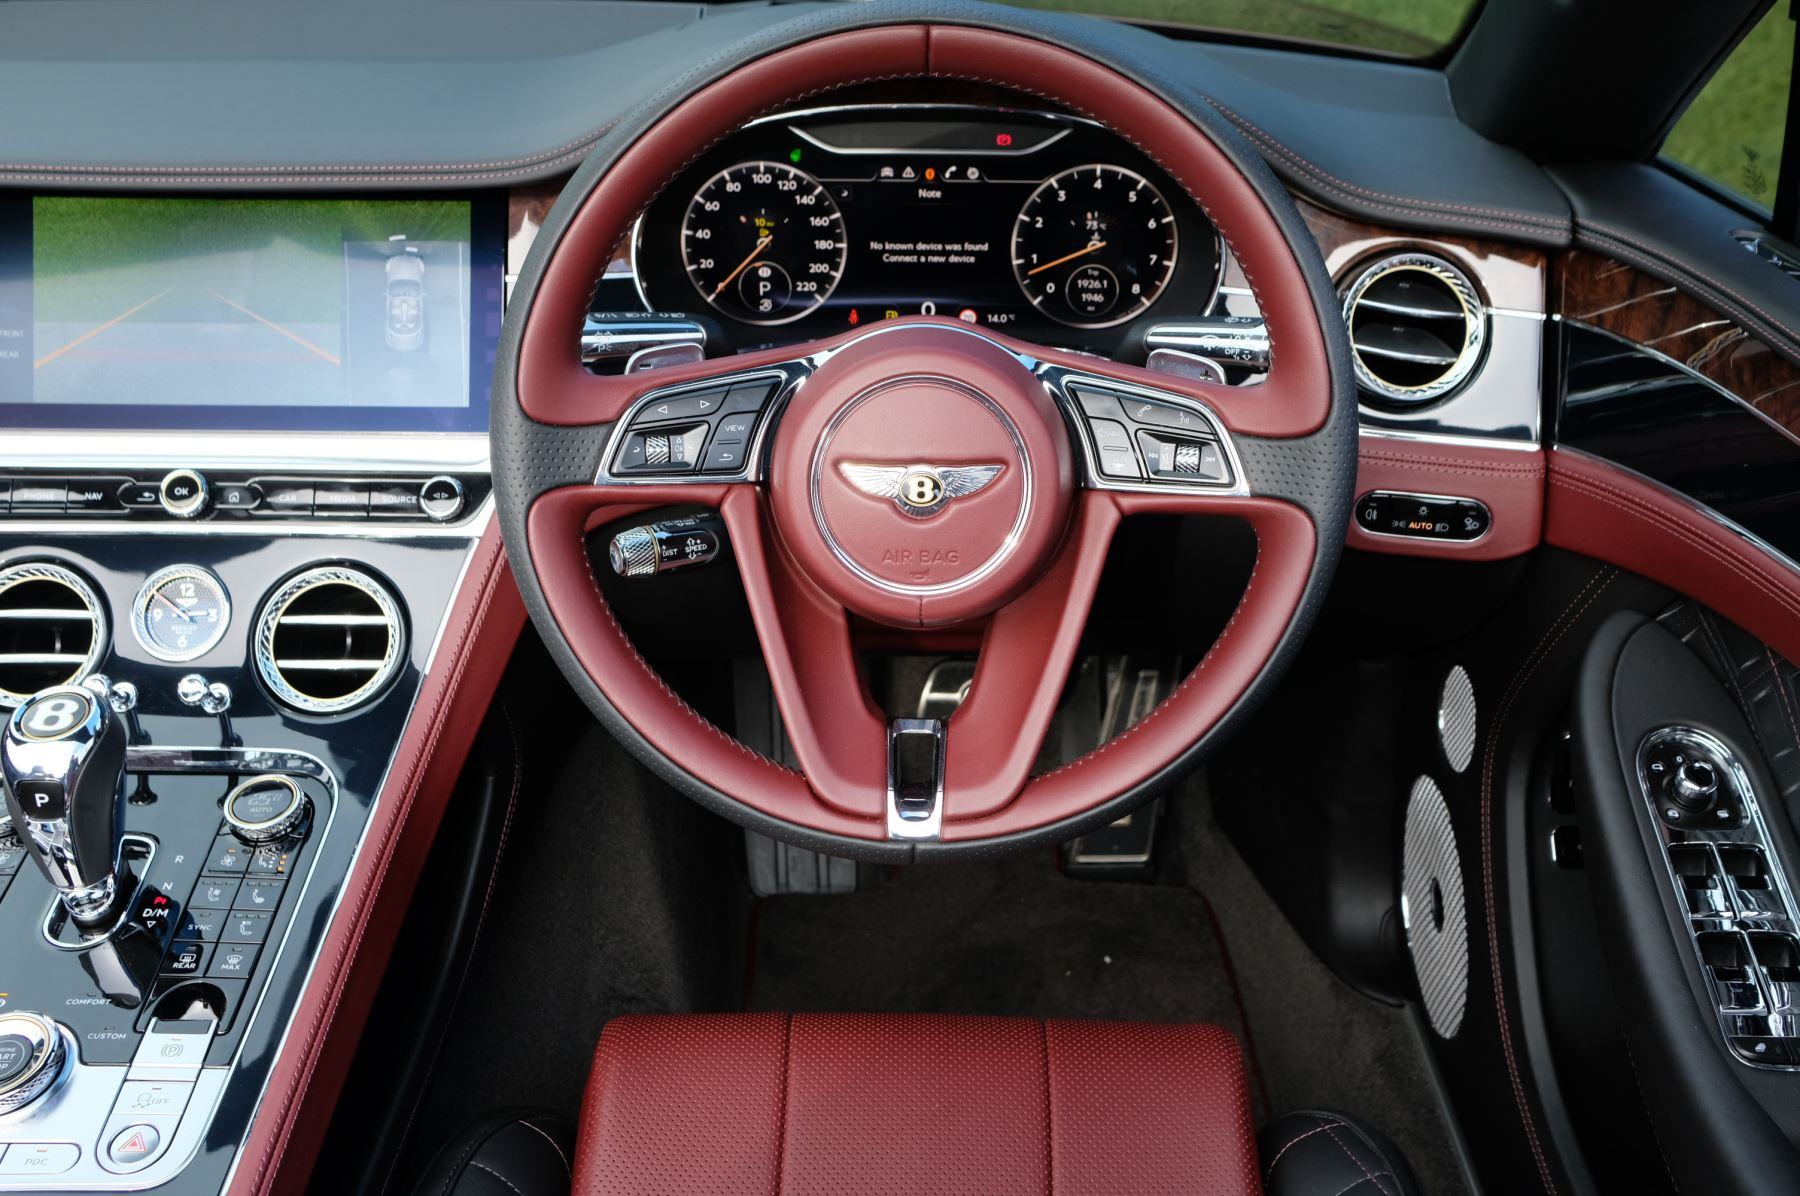 Bentley Continental GTC 6.0 W12 - First Edition Specification image 14